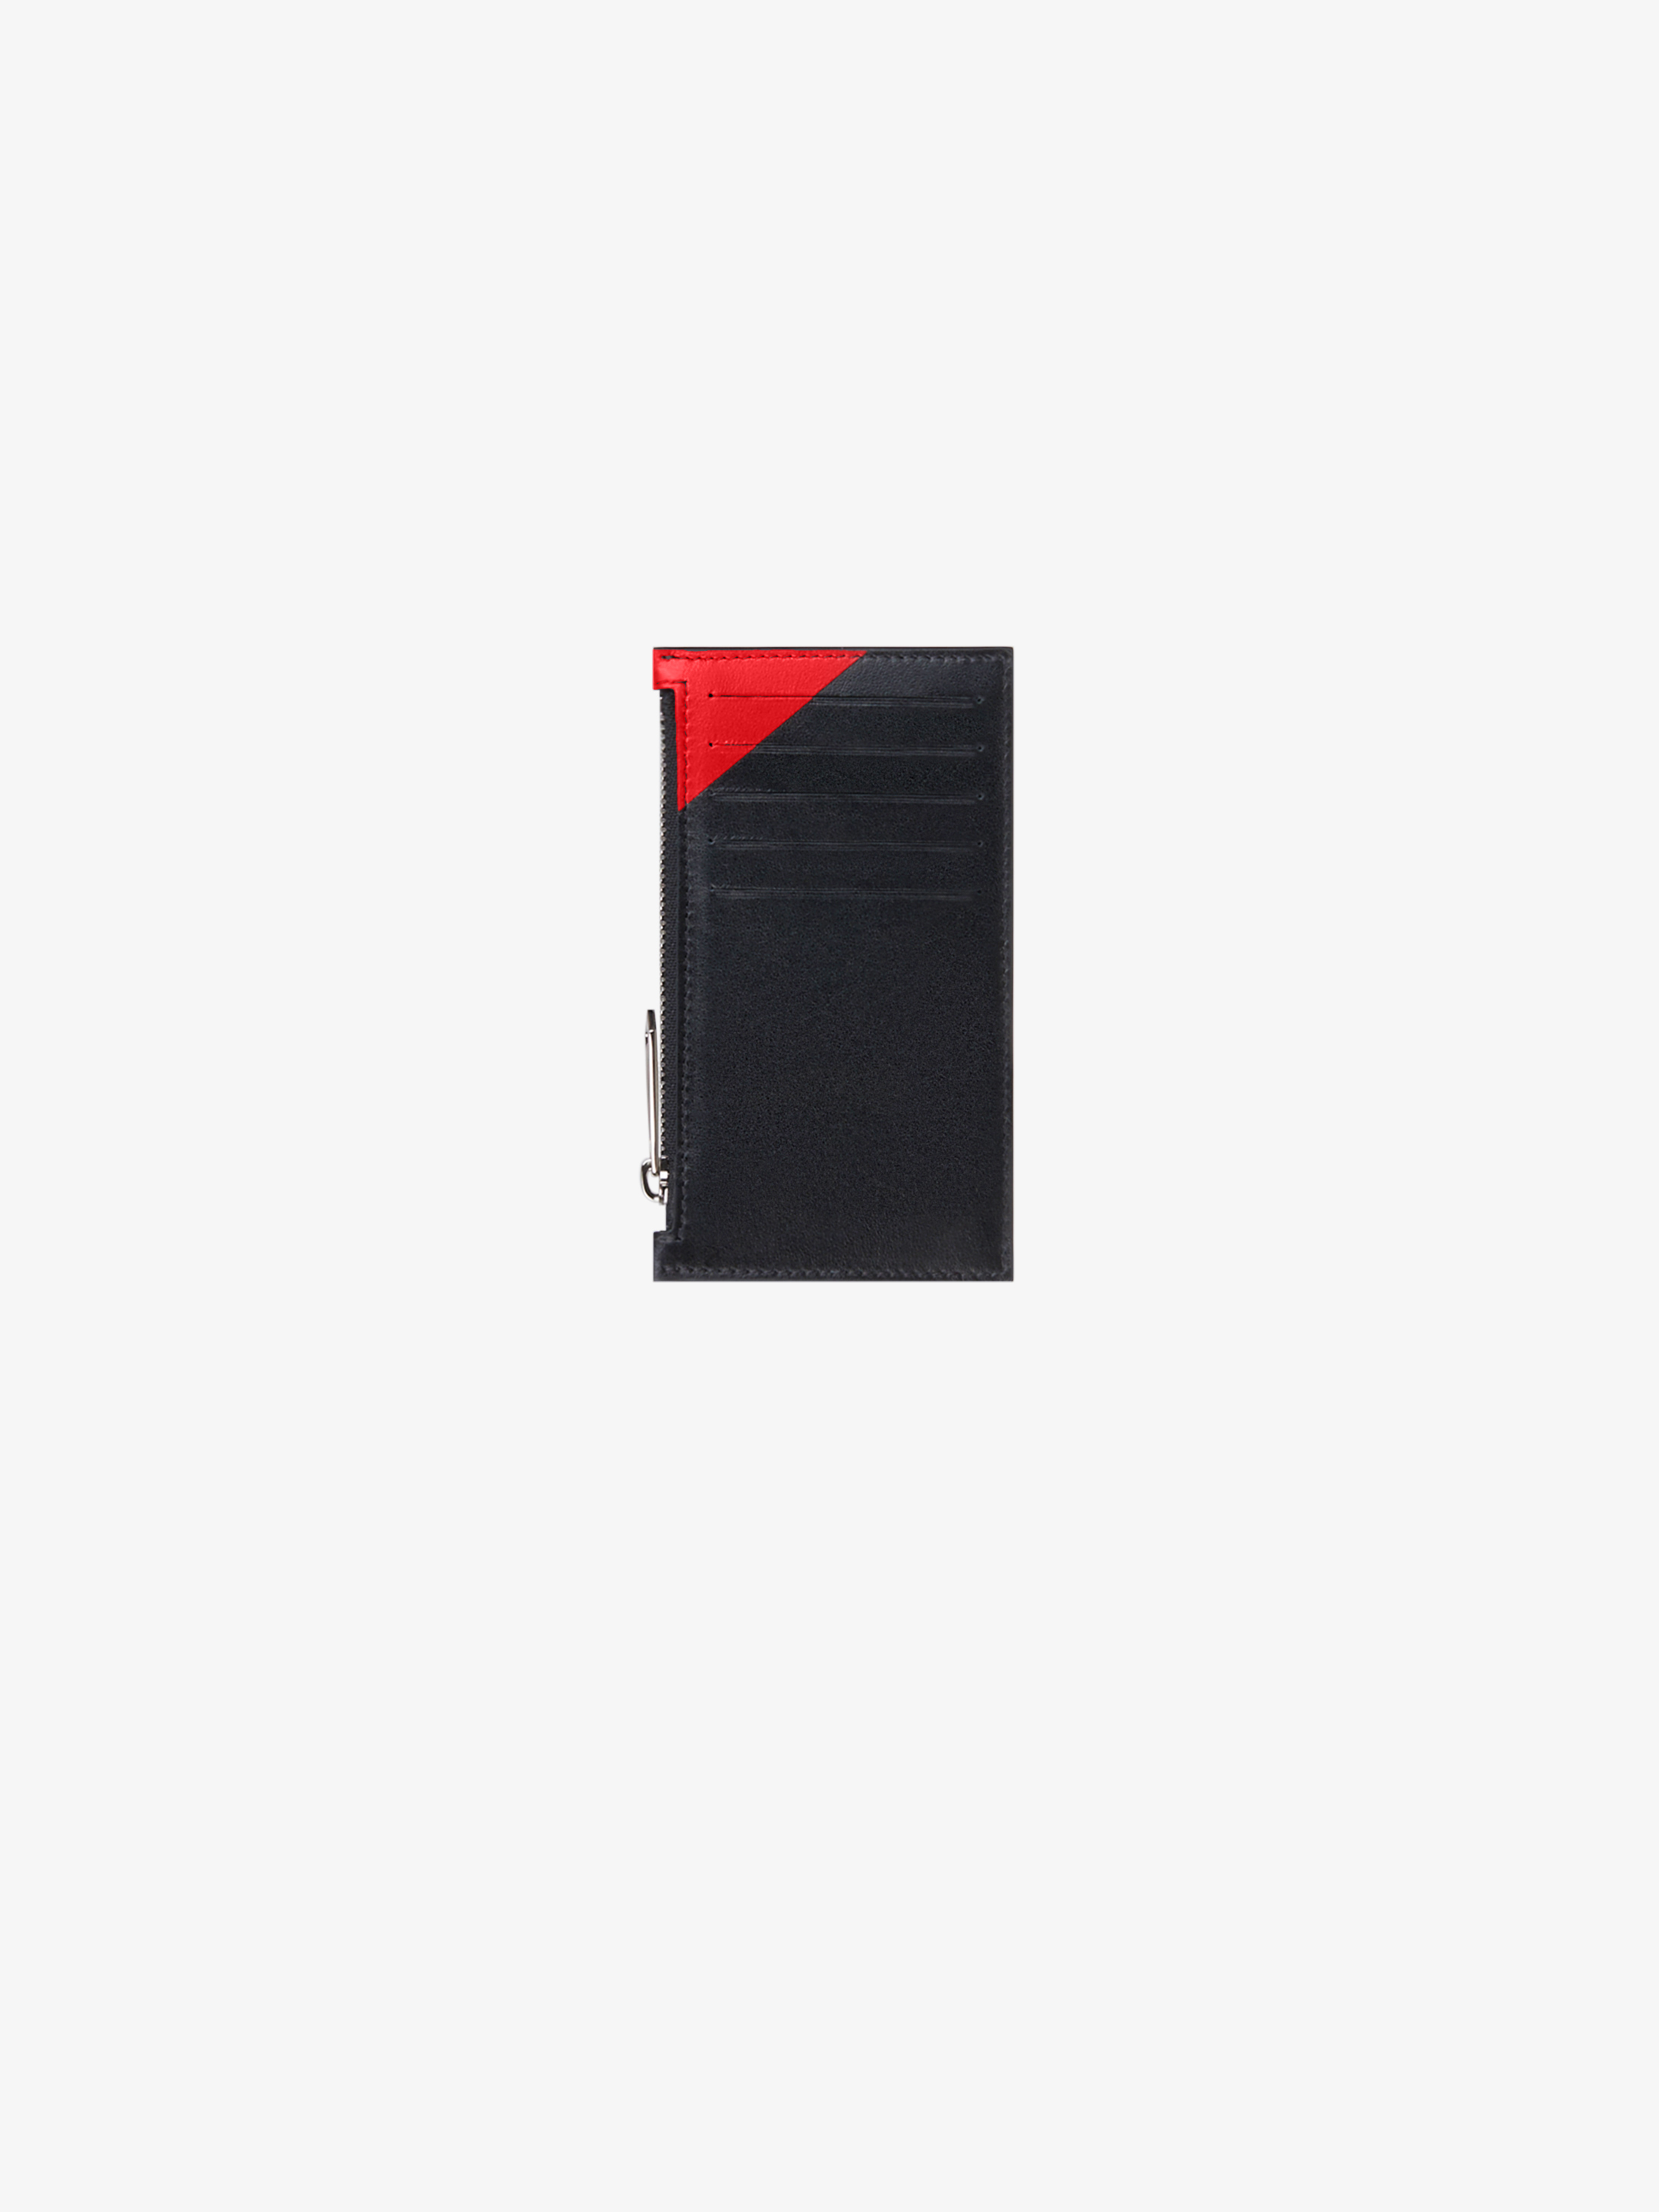 GIVENCHY zipped card holder in leather